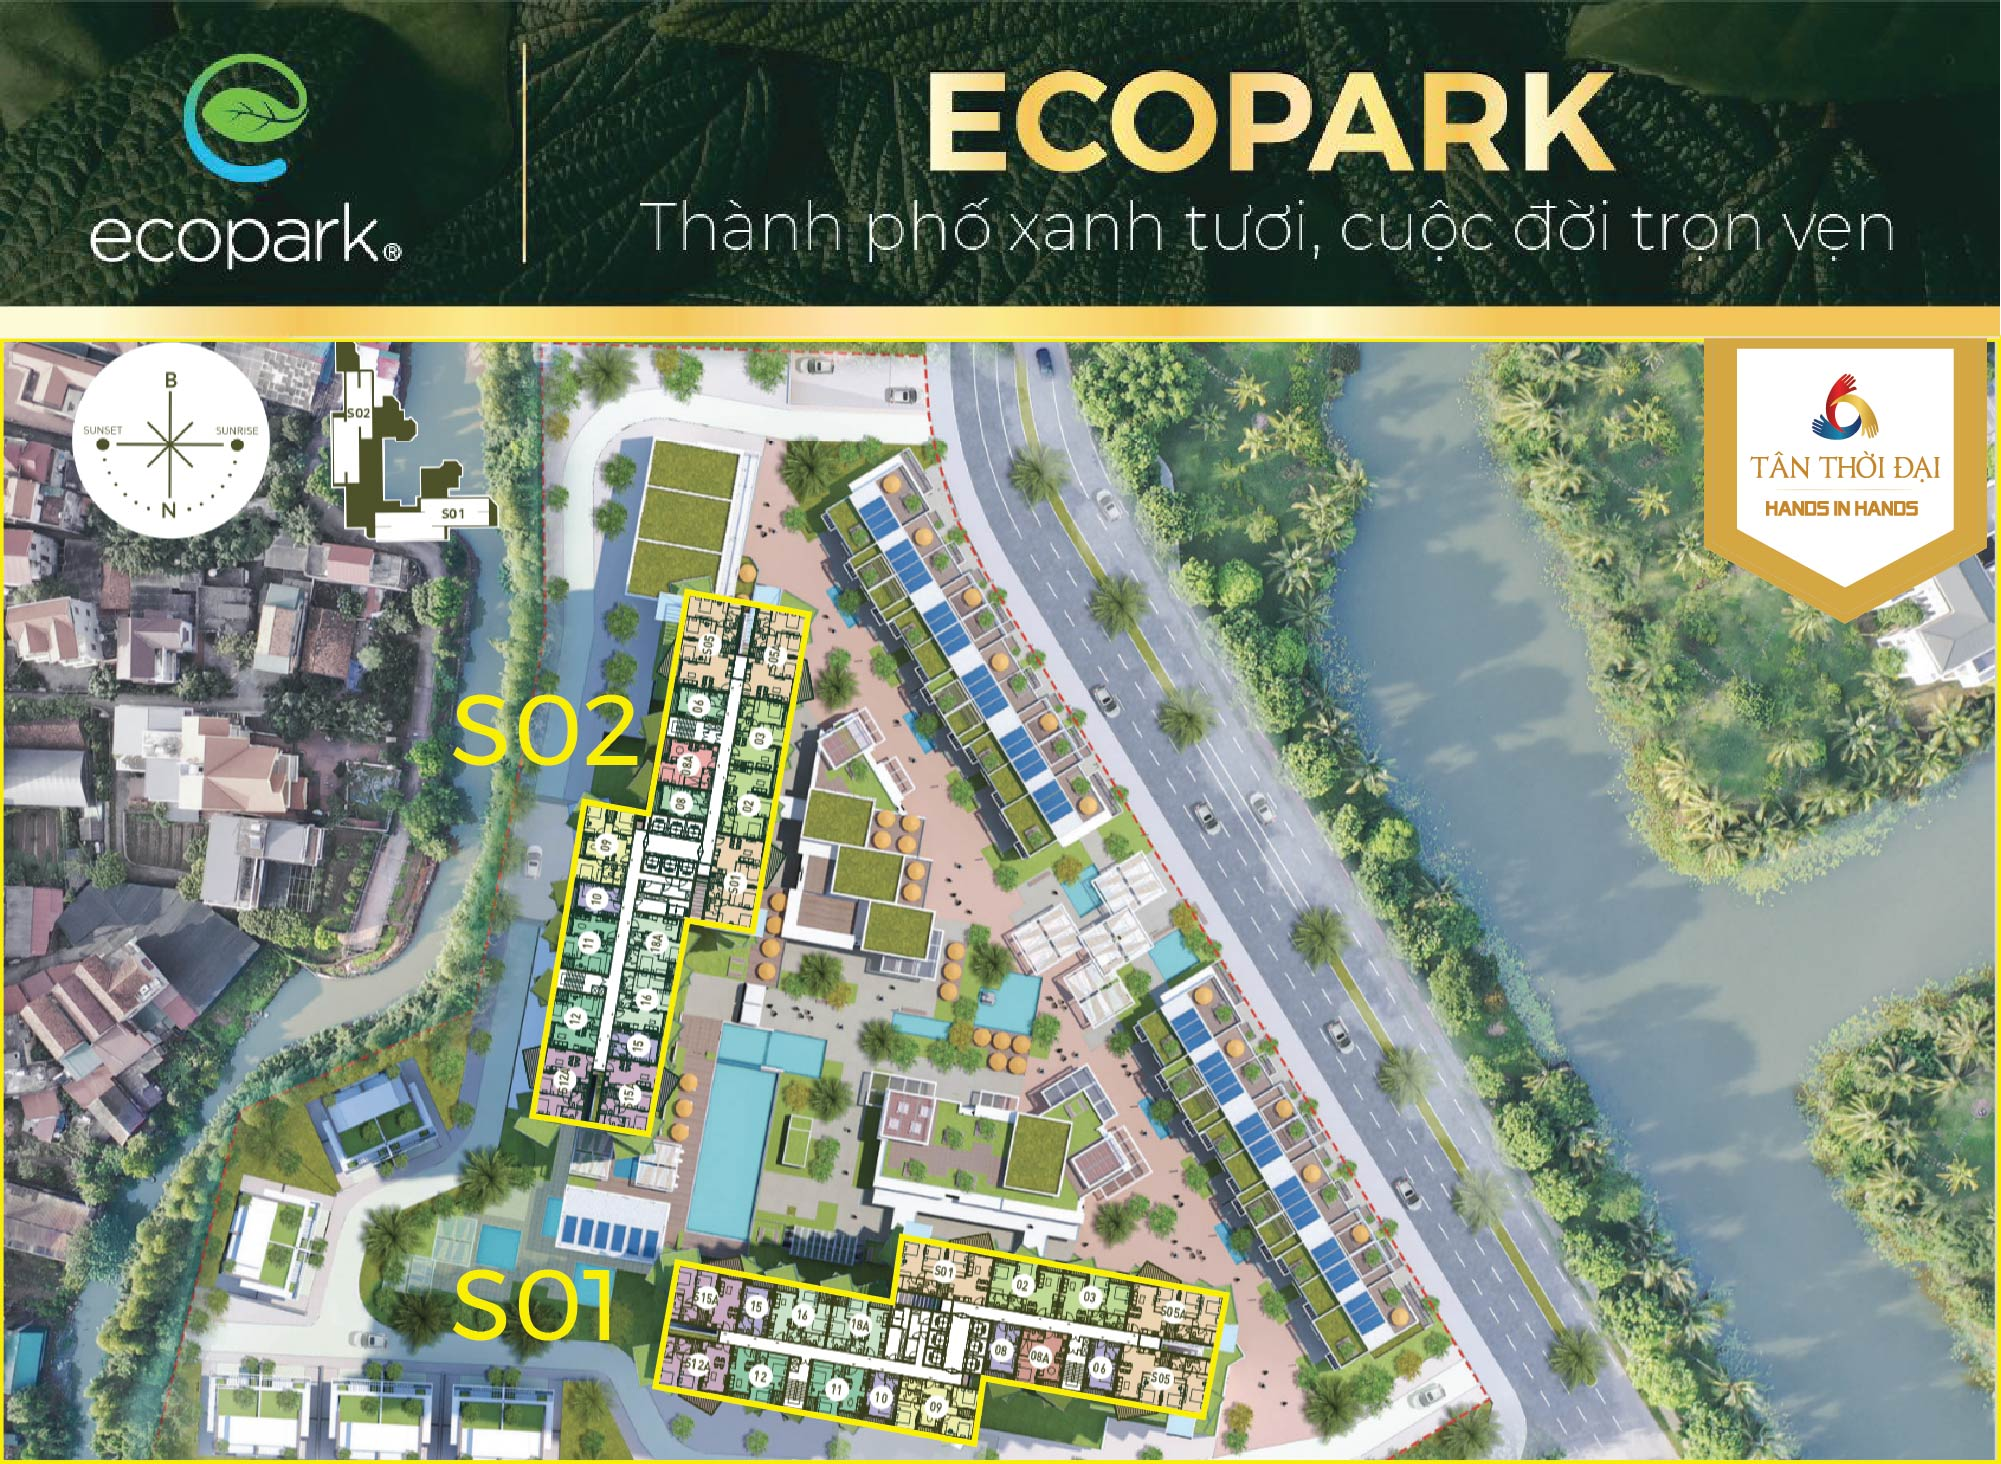 Vị trí Sol Forest Ecopark